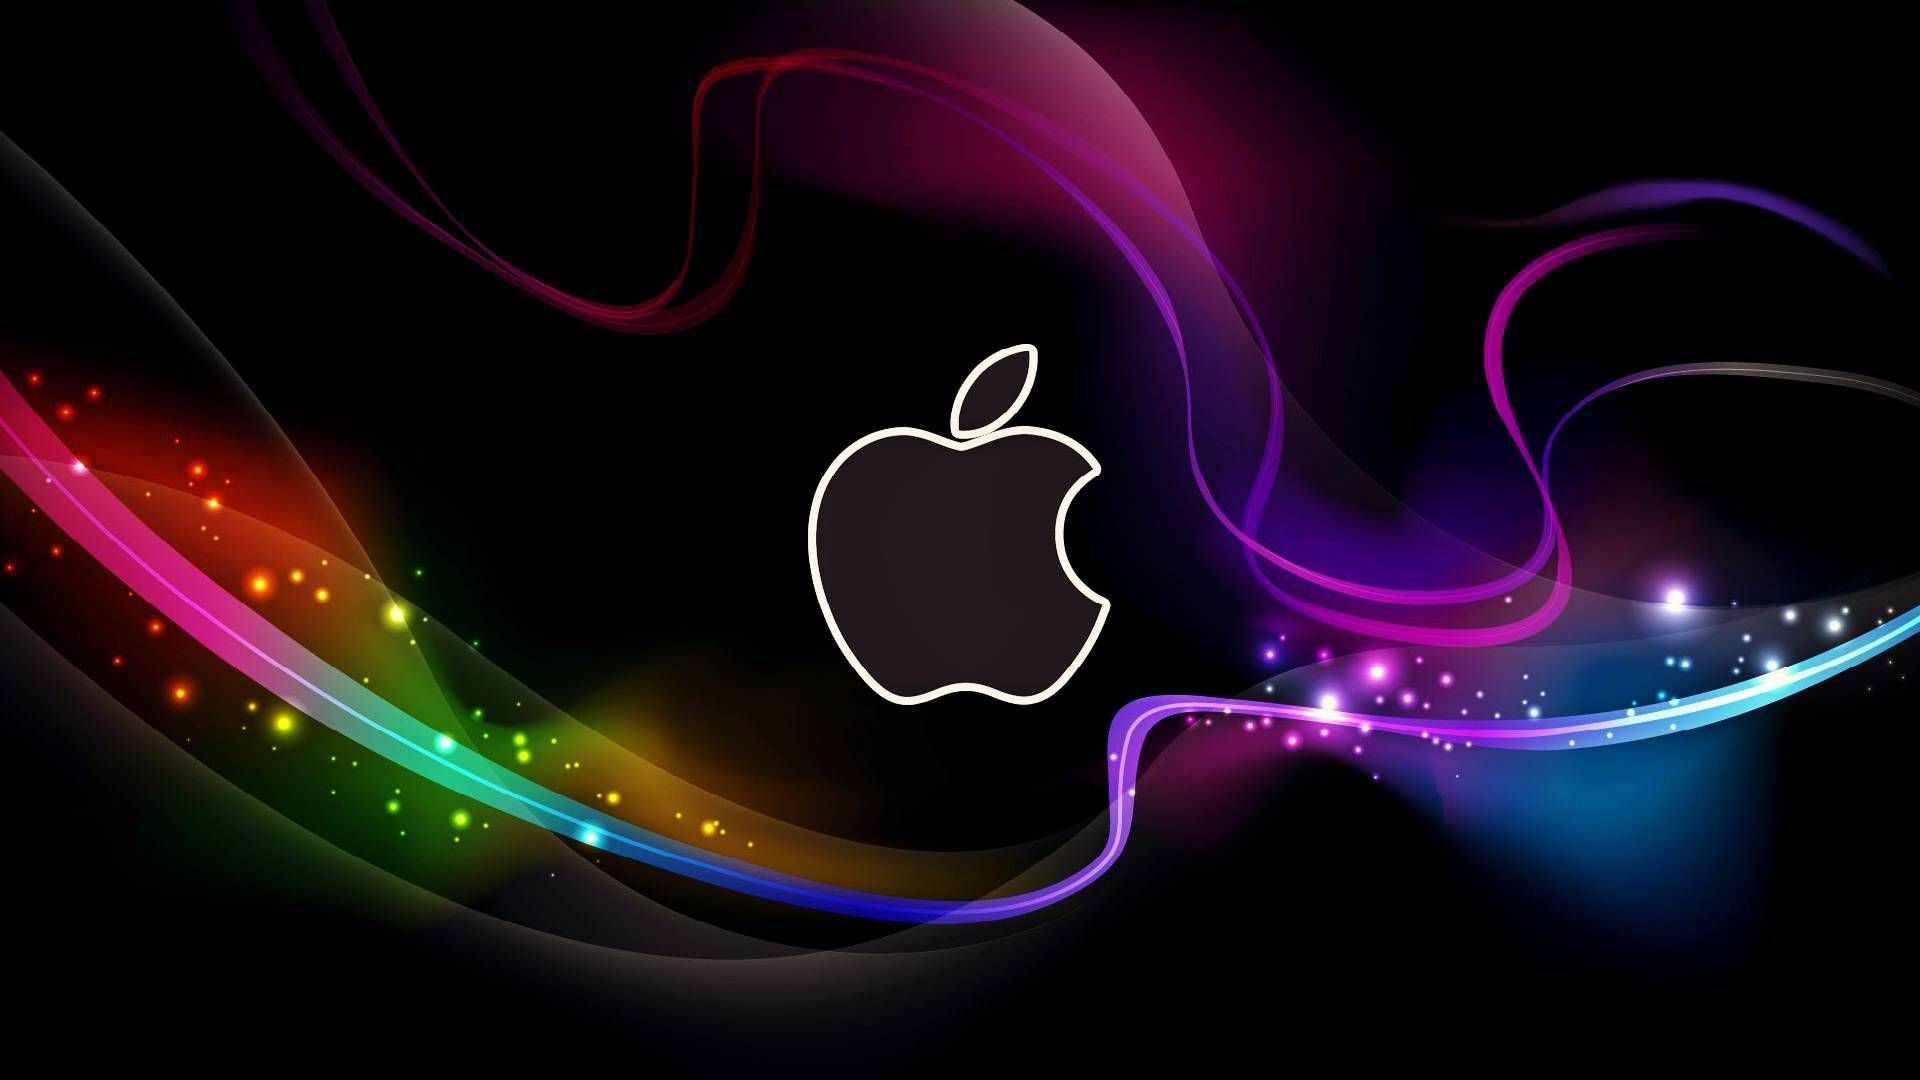 hd cool apple logo with abstract background wallpapers